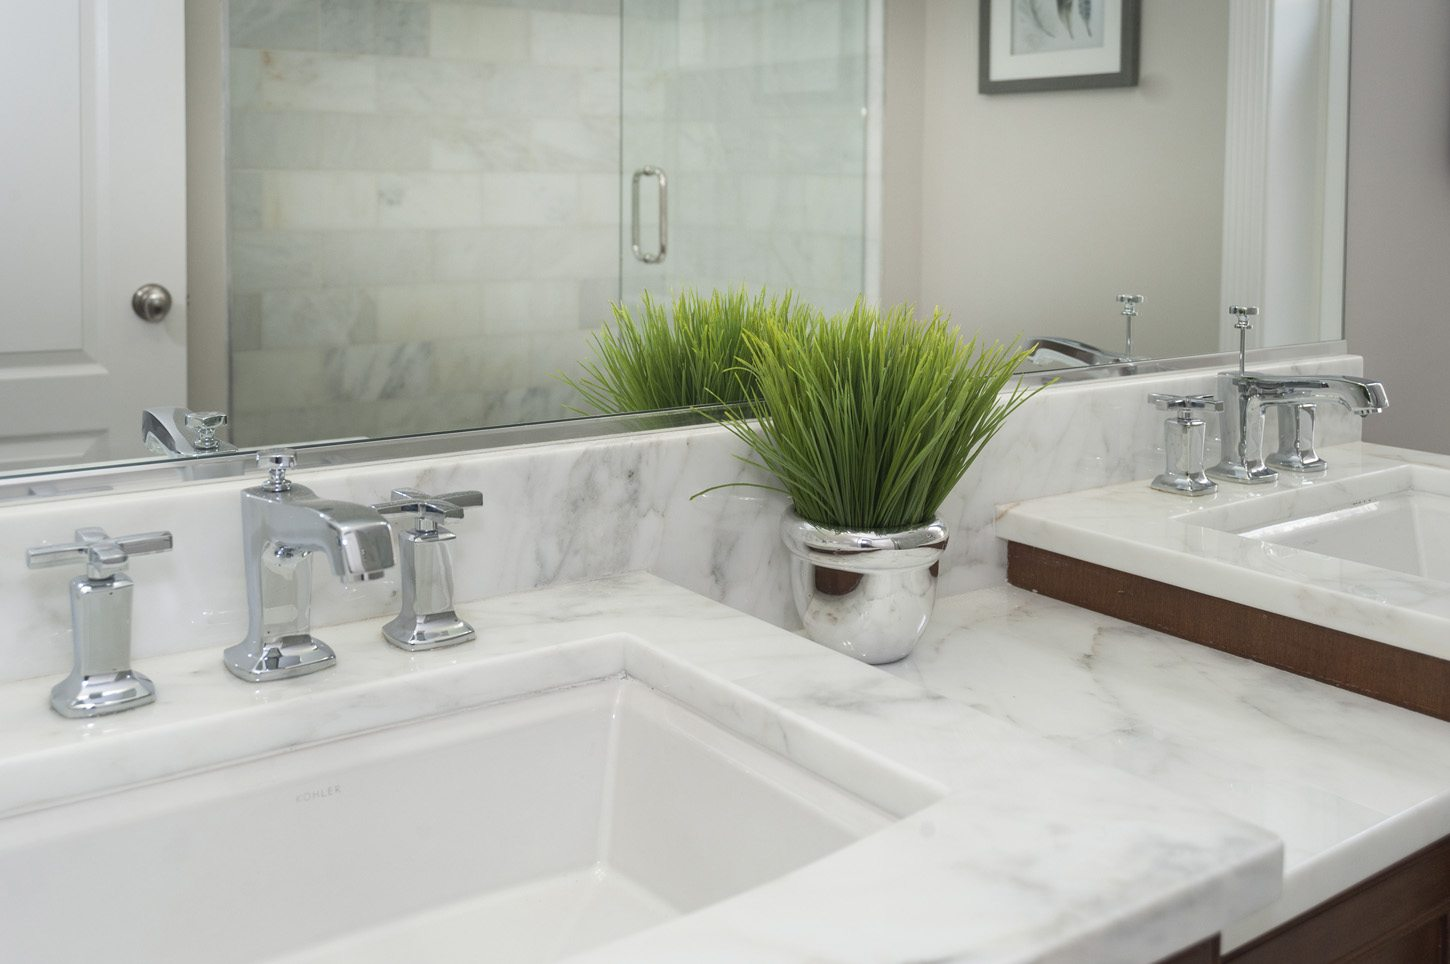 Bathroom Countertops, Bathroom Remodeling and bath vanity tops in ...